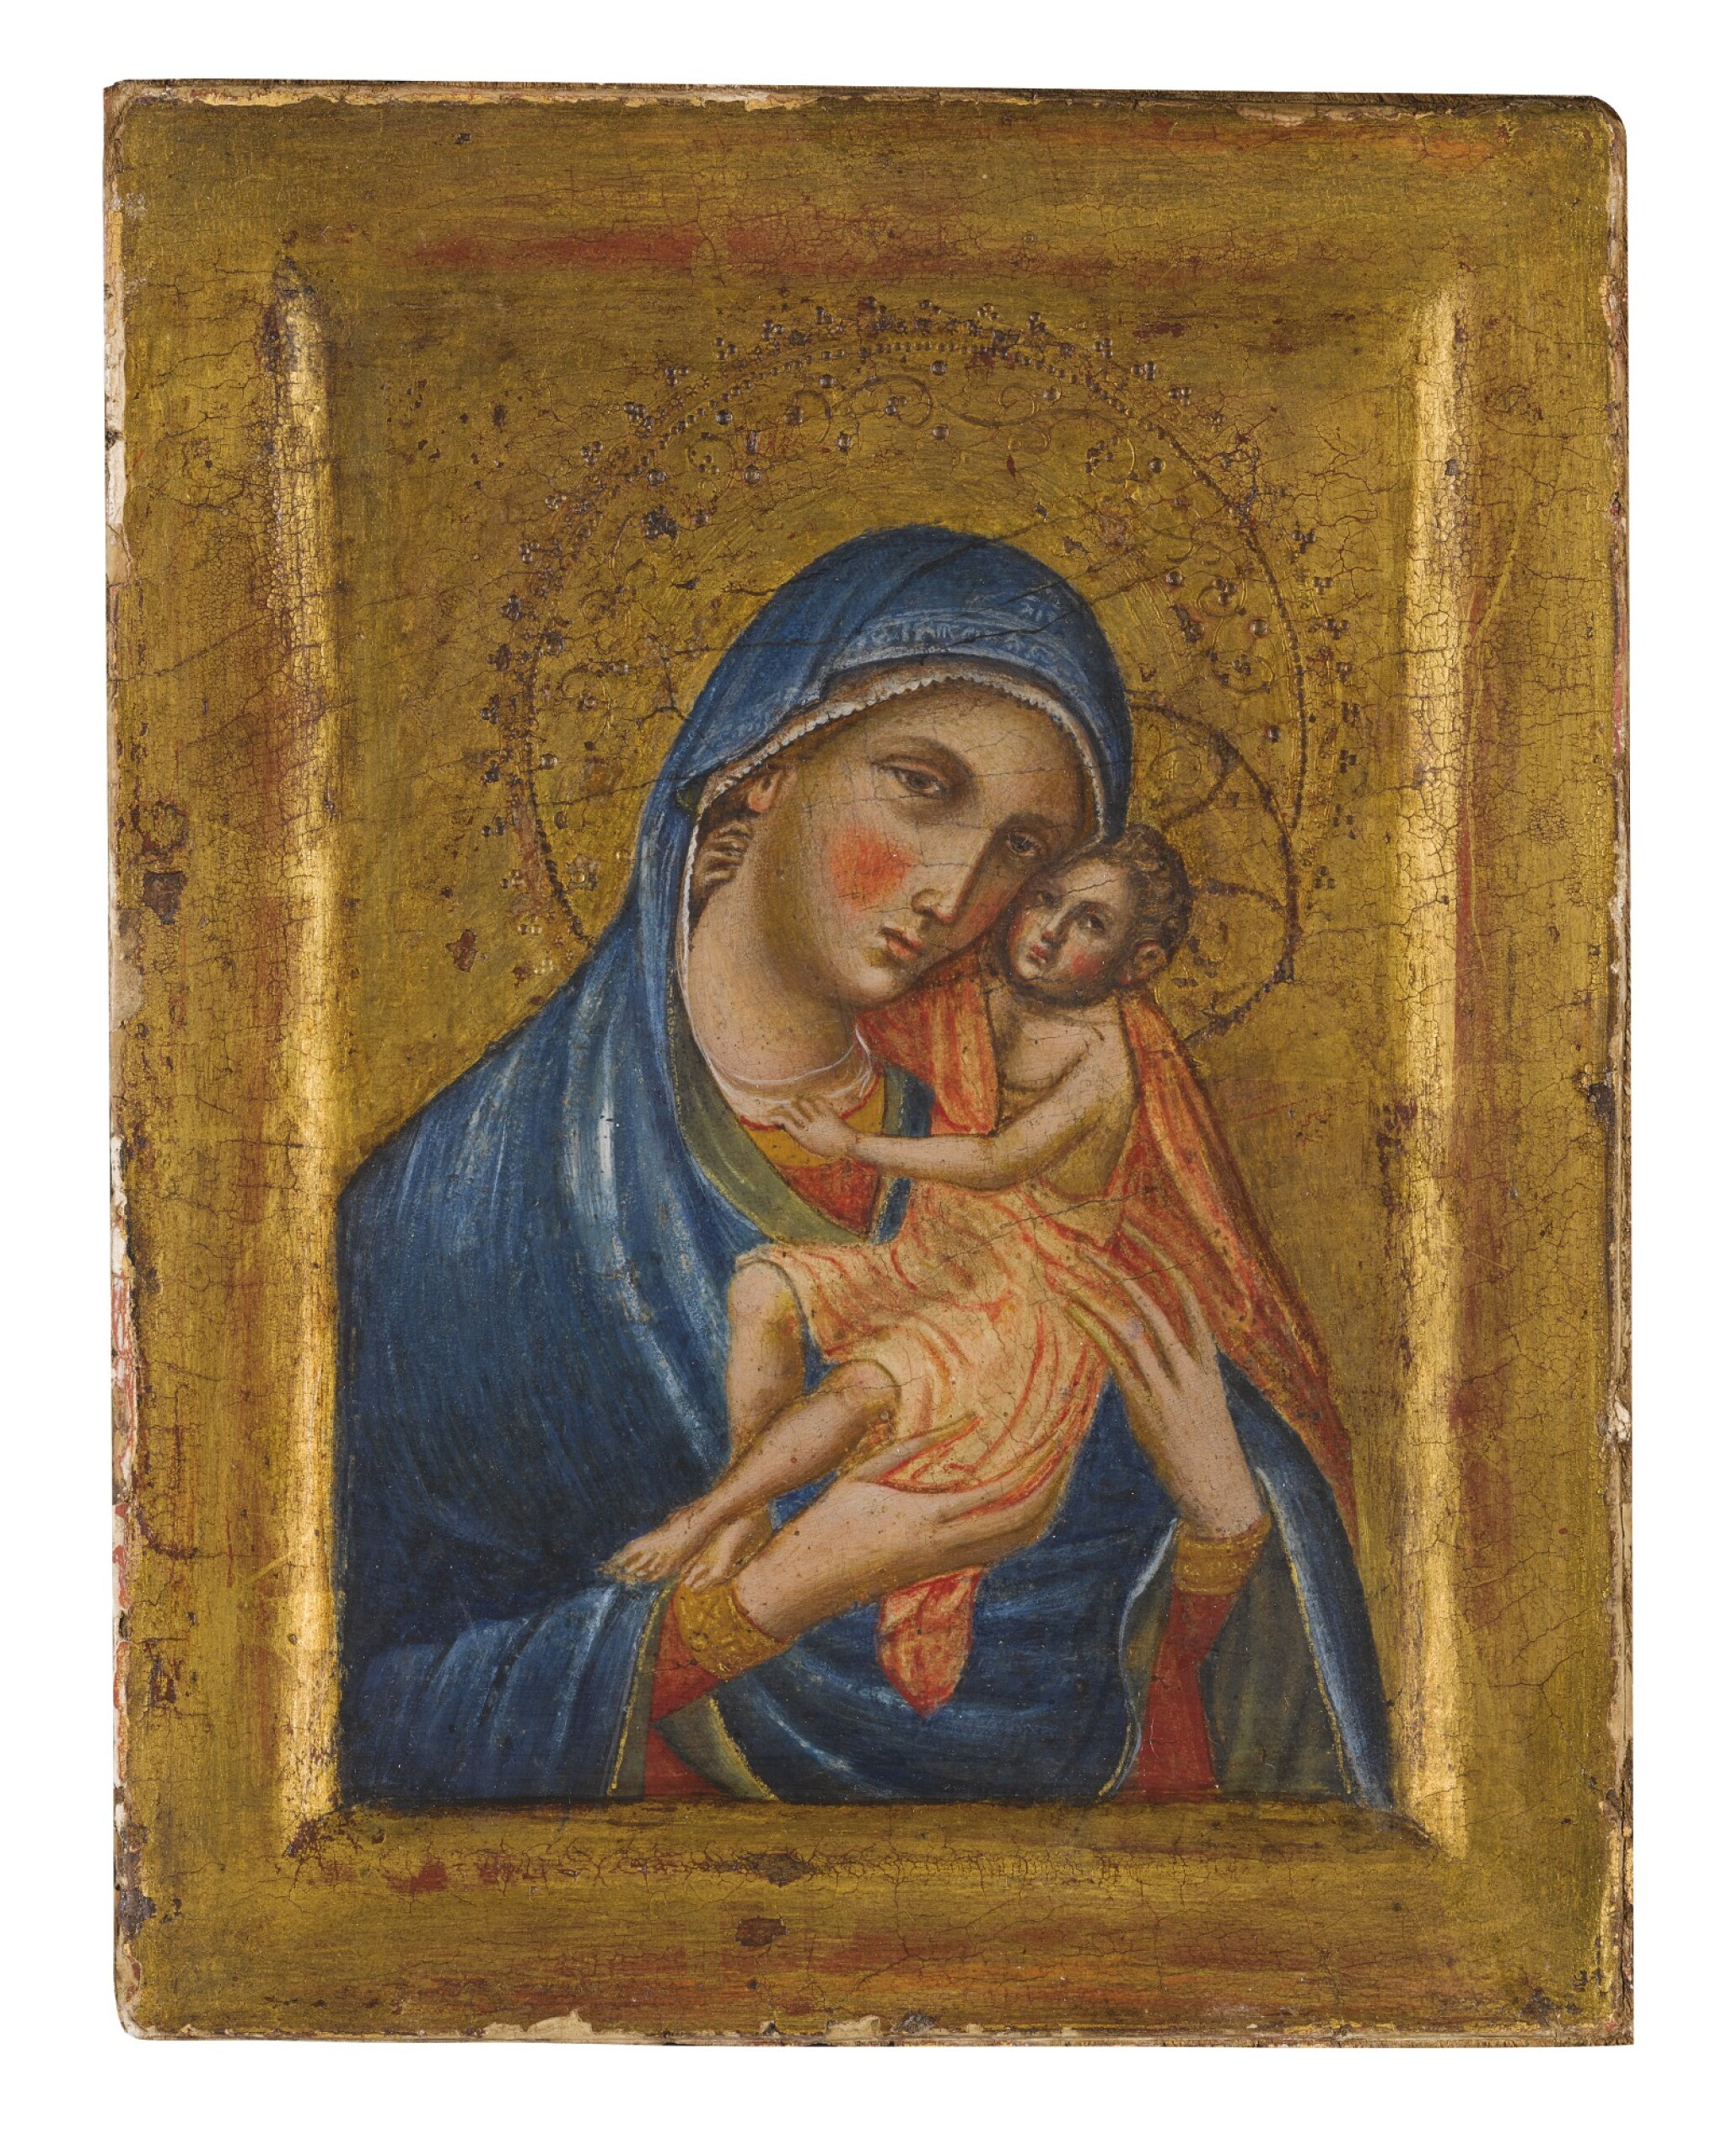 WORKSHOP OF PAOLO VENEZIANO   MADONNA AND CHILD